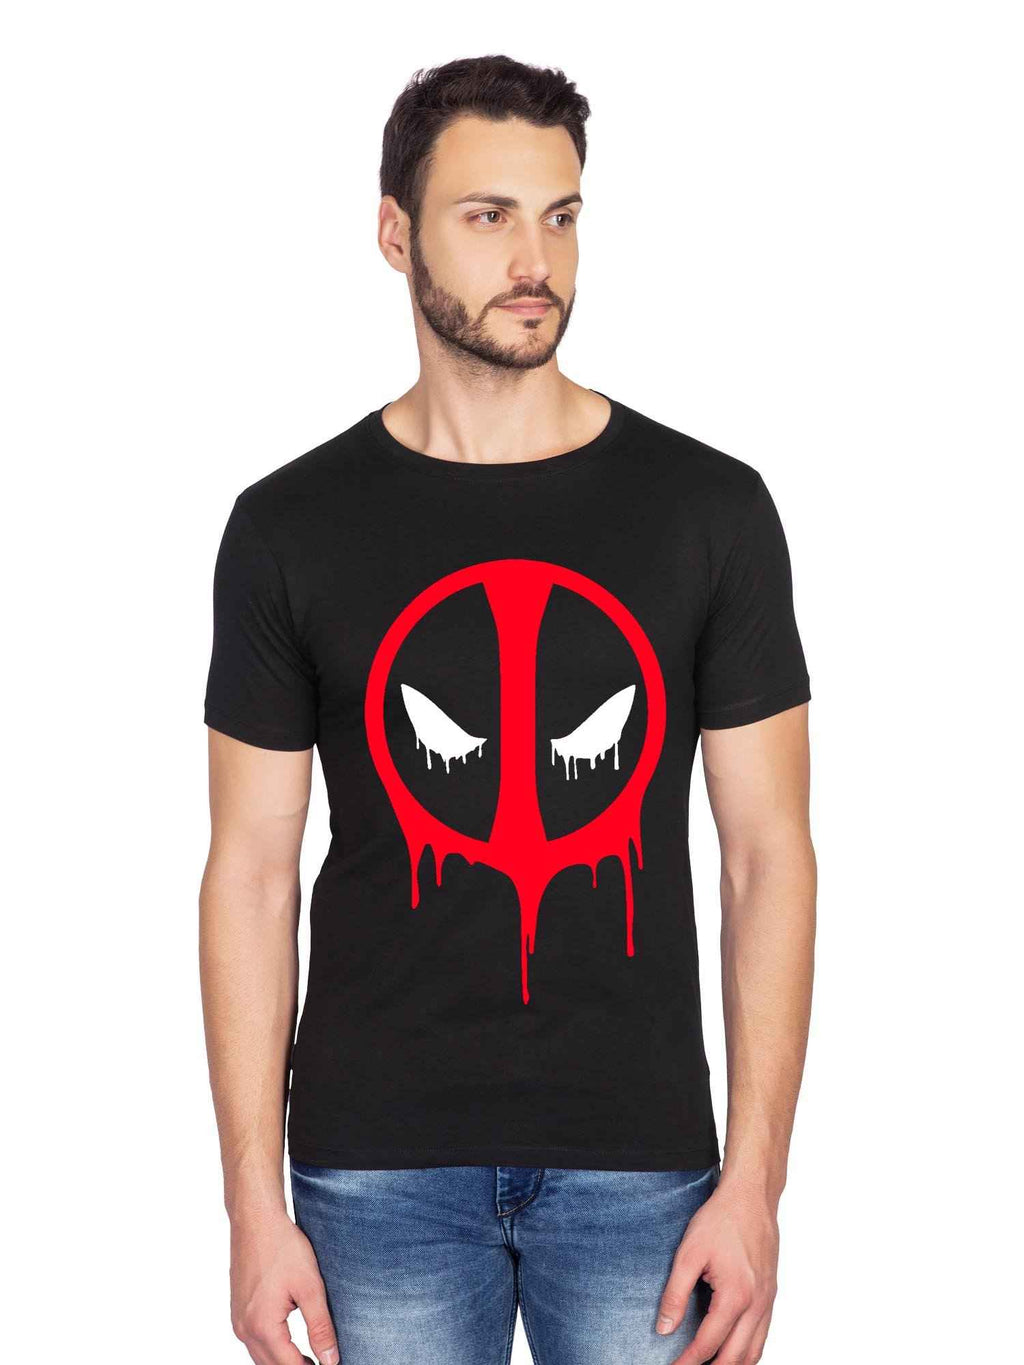 GID Deadpool Superhero Graphics Half Tshirt - bluehaat